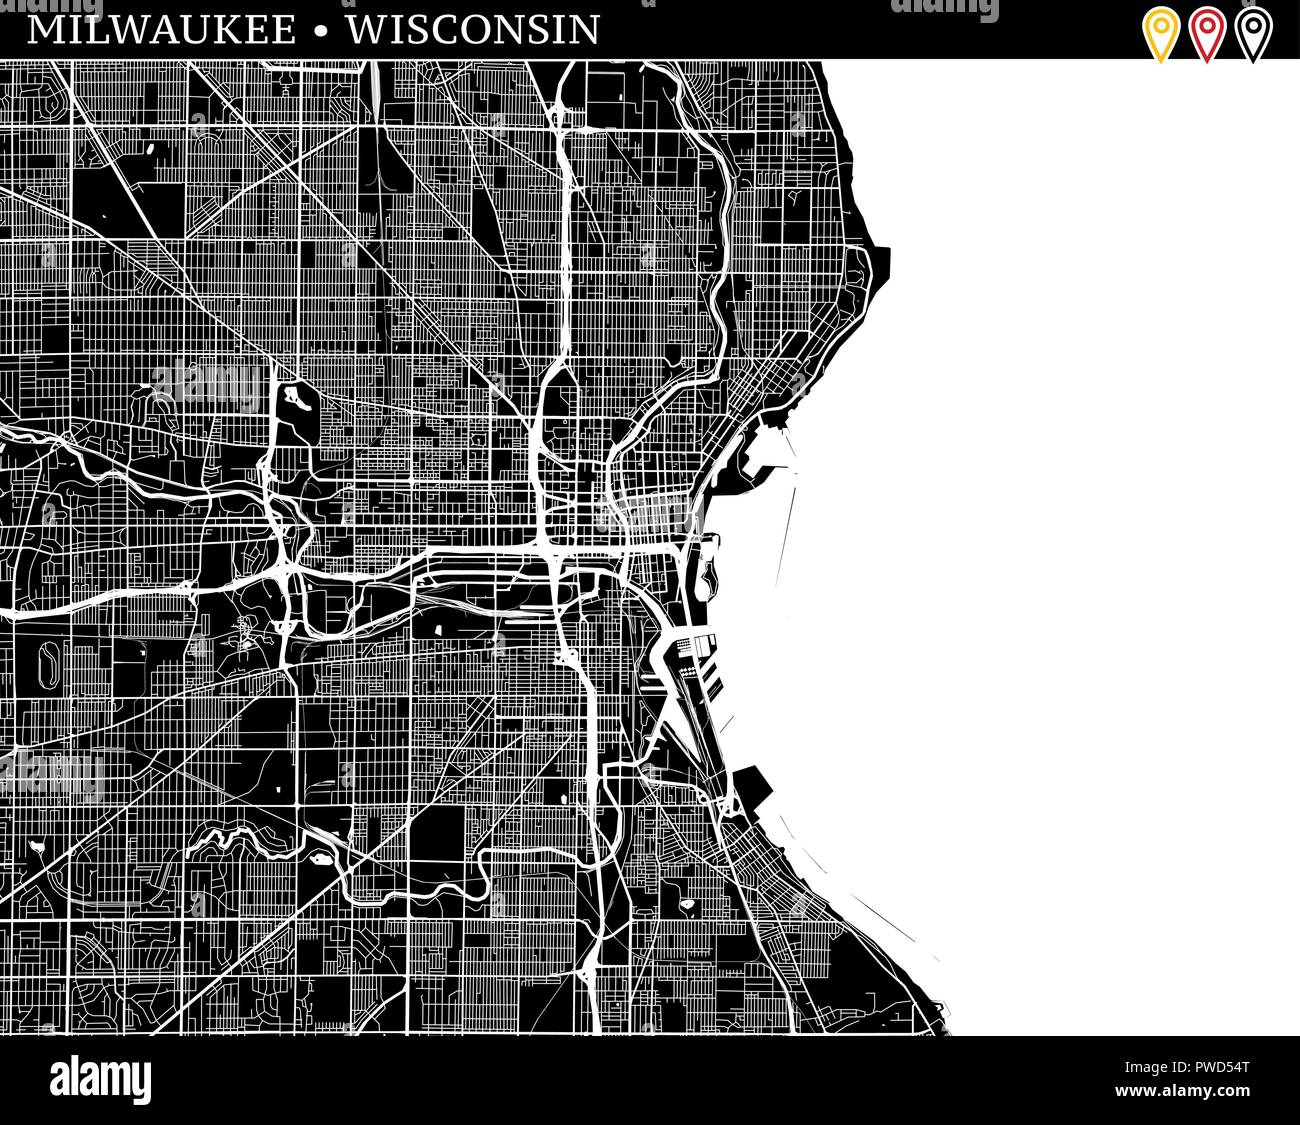 Simple Map Of Milwaukee Wisconsin Usa Black And White Version For